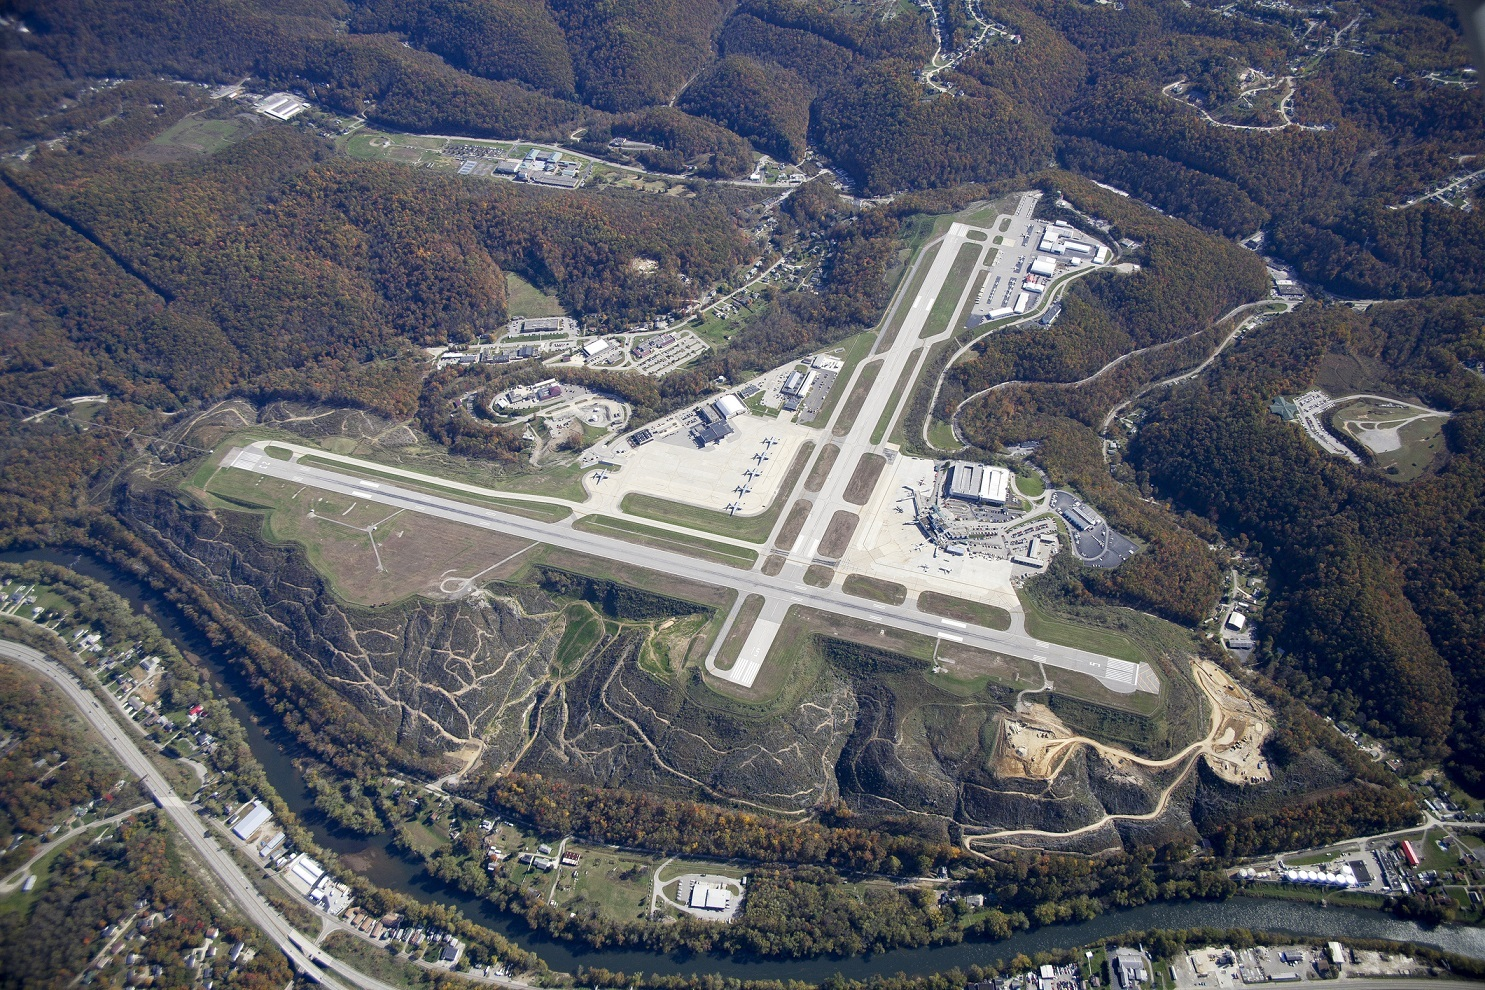 Aerial view of Yeager Airport, Charleston, West Virginia